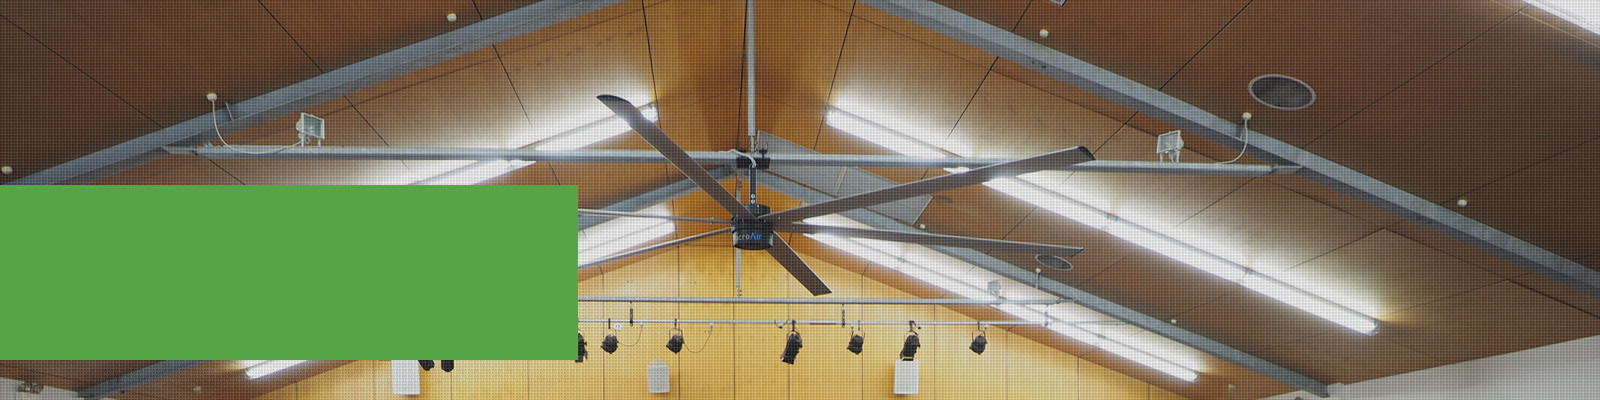 Profan News Commercial Warehouse Ceiling Fans